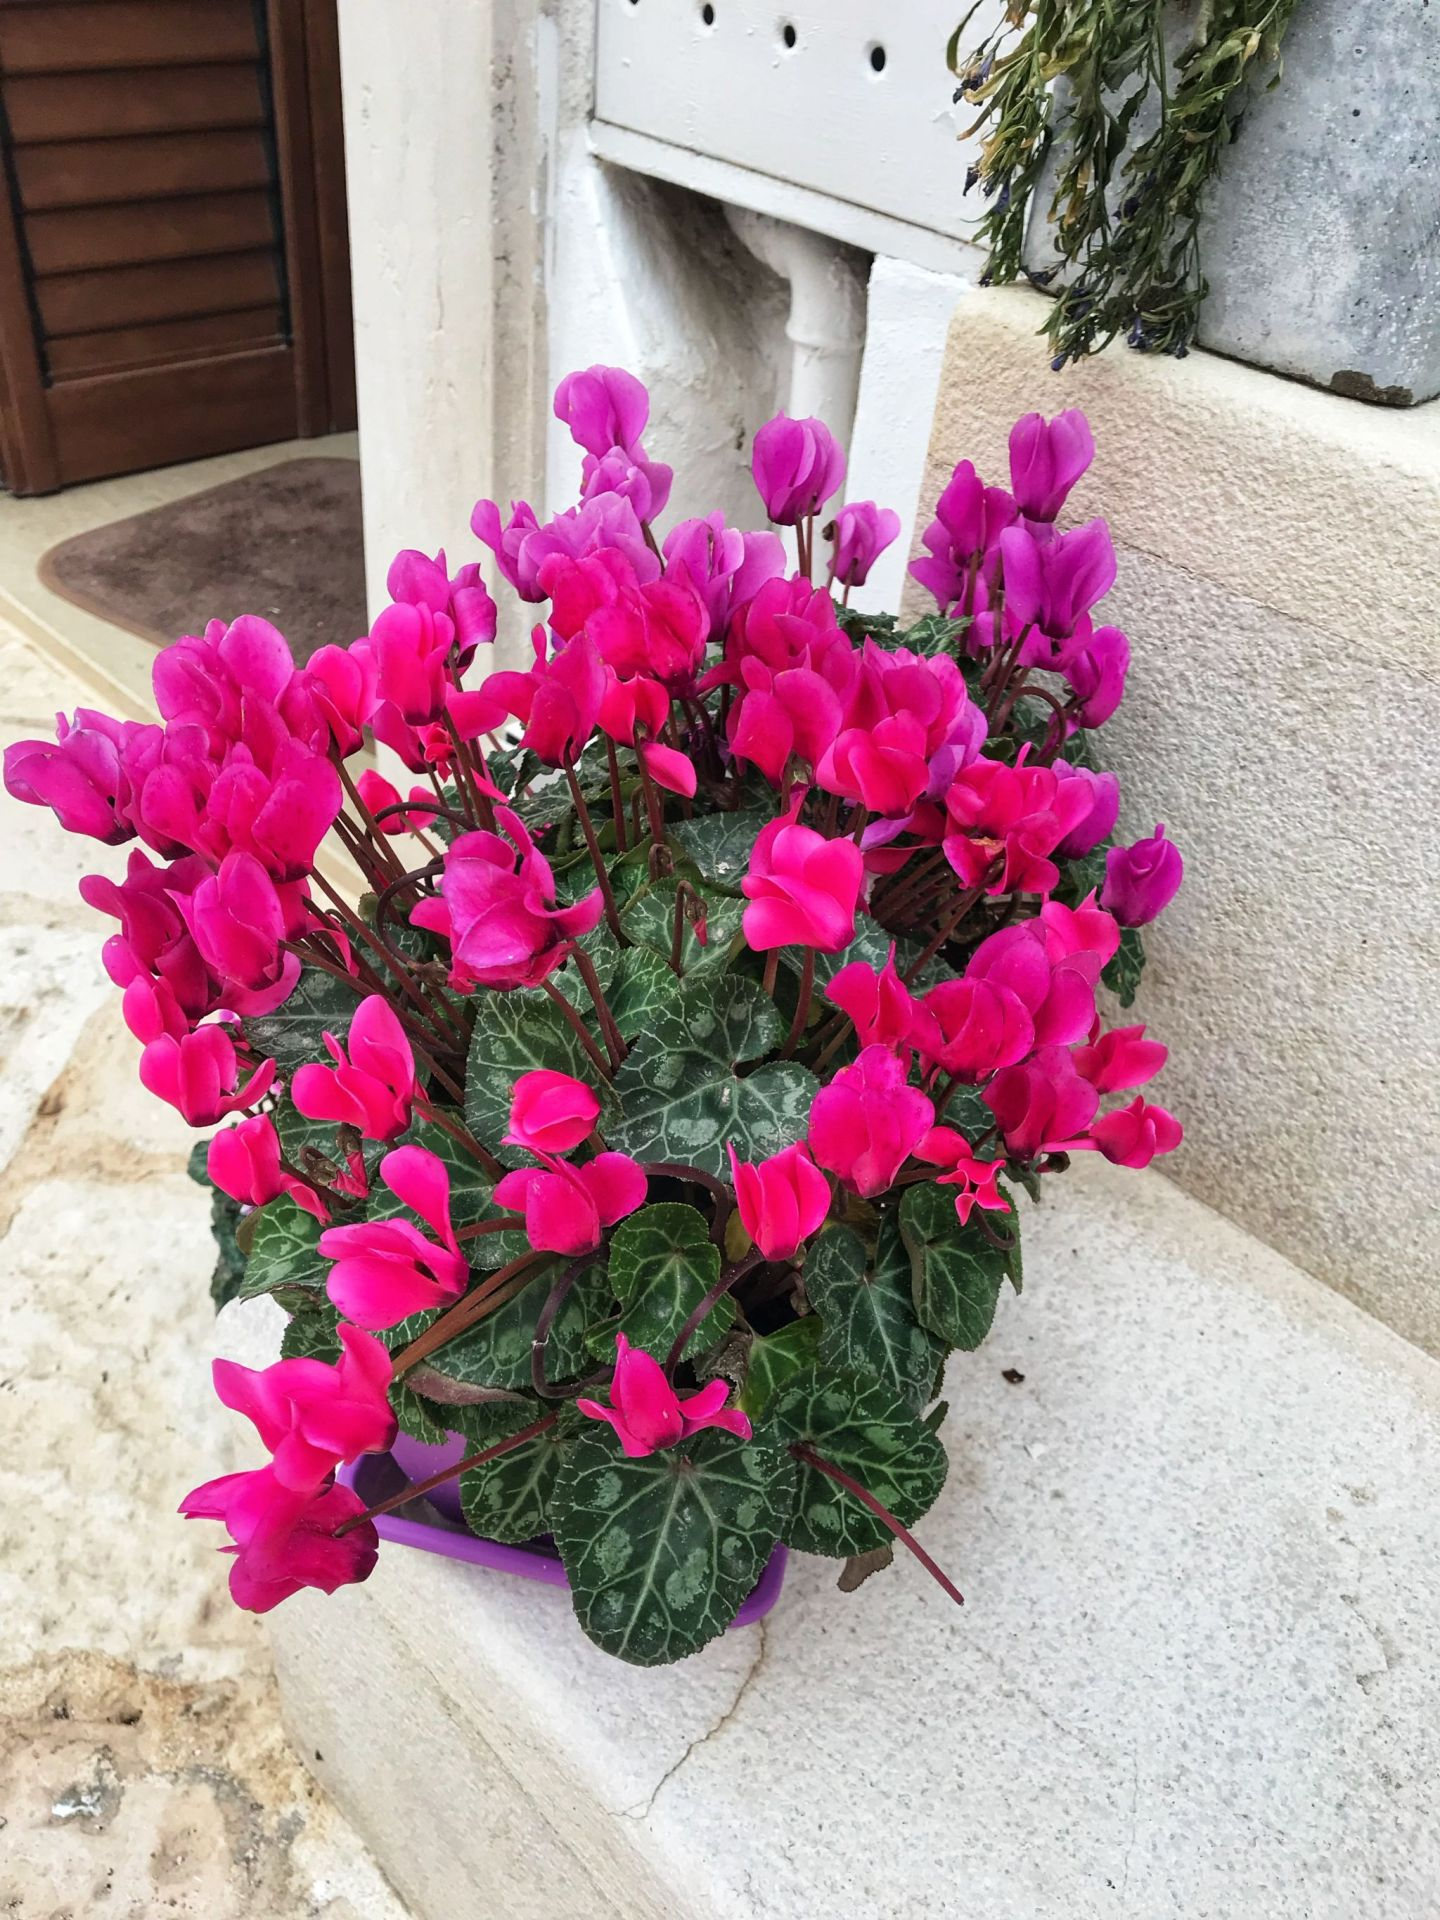 Brightly coloured flowers adorning Puglia Southern Italy